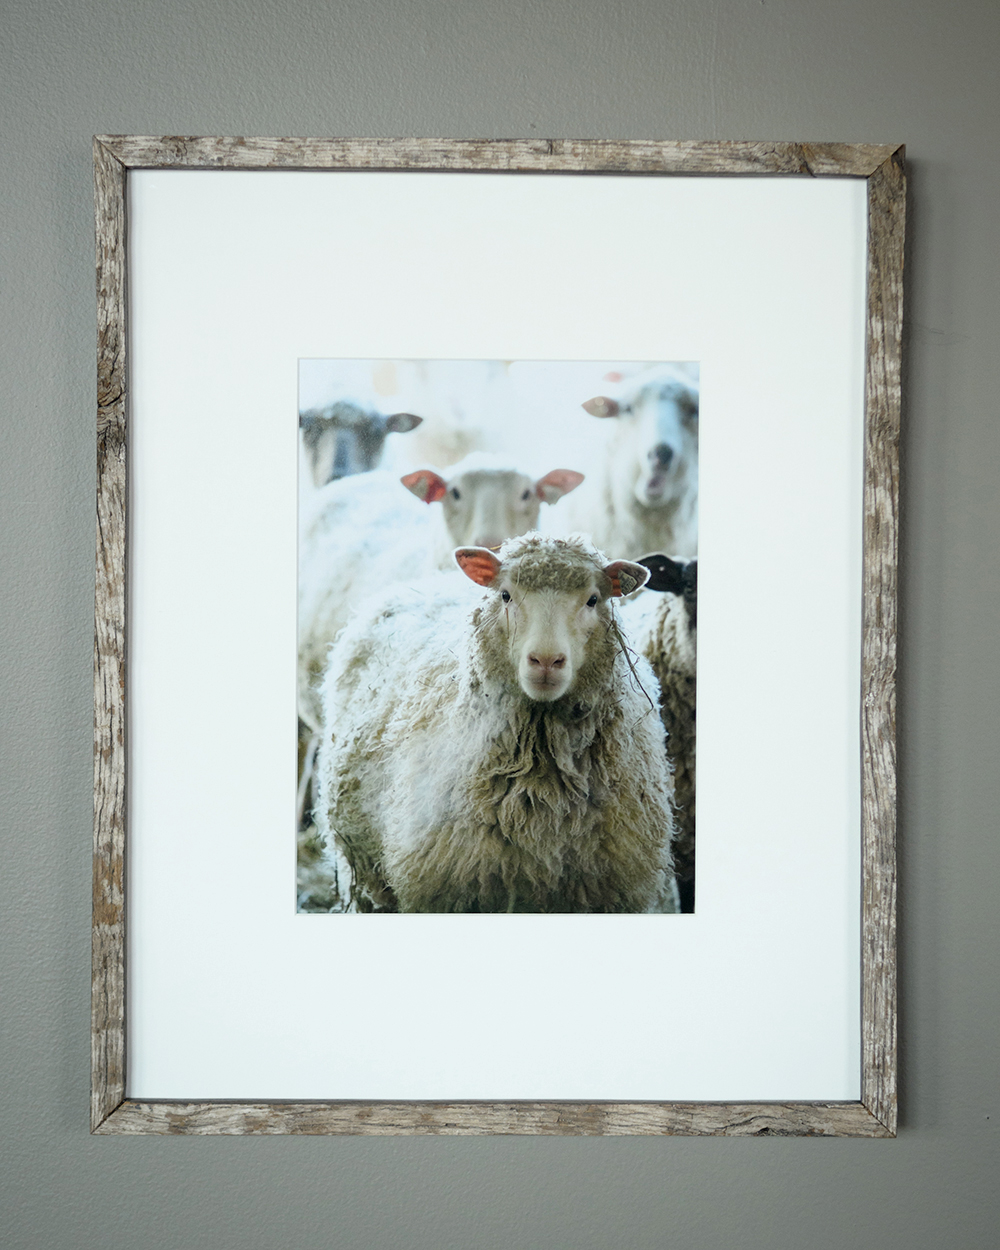 The Flock - North Star Sheep Farm, Windham (SOLD)